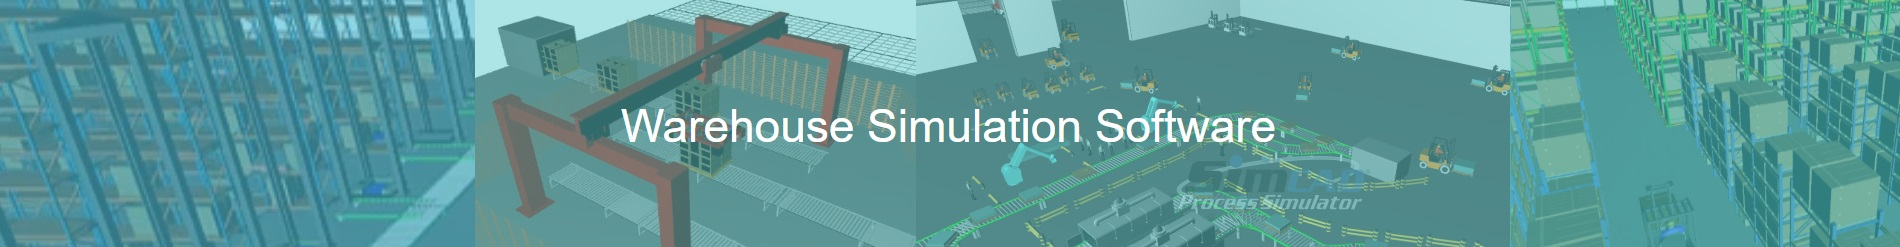 warehouse simulation - warehouse simulation software